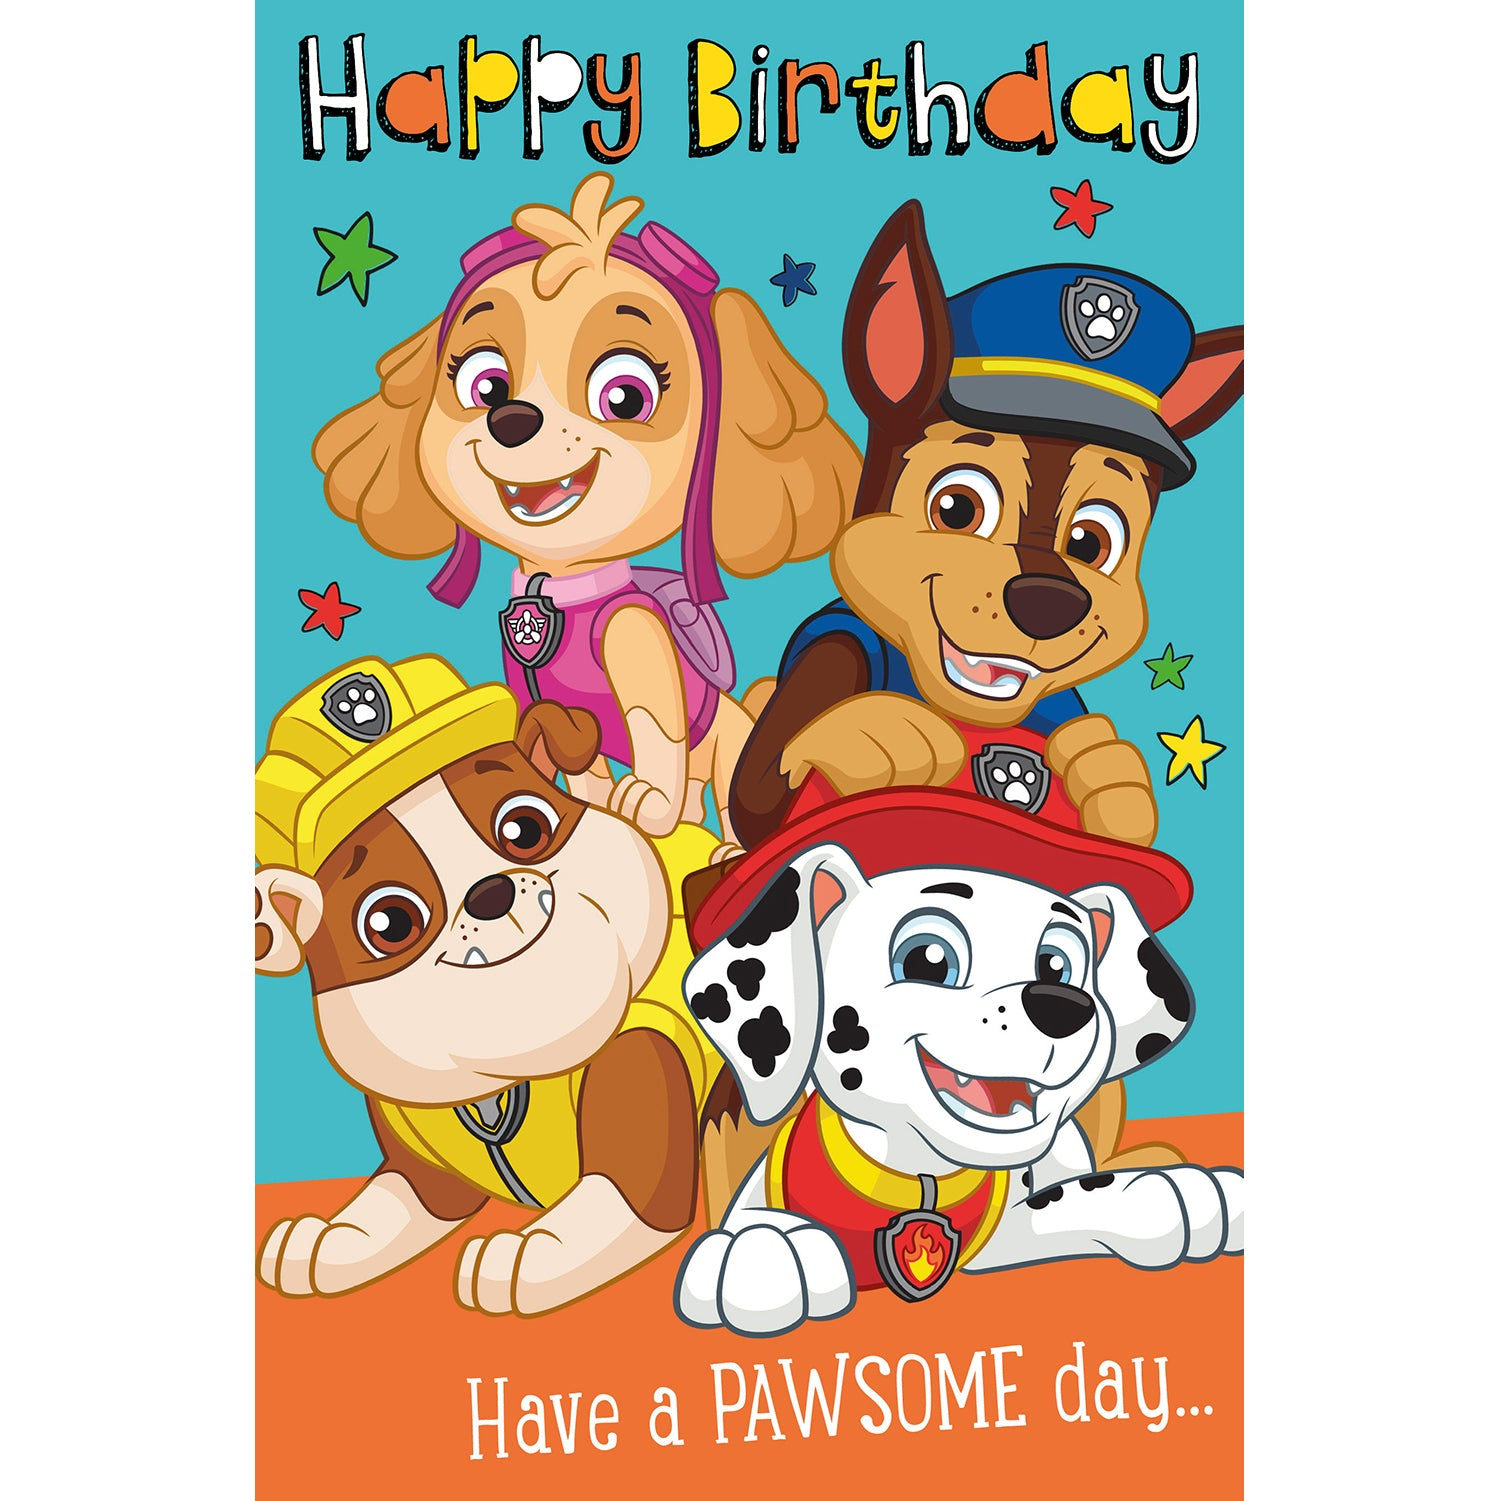 Paw Patrol Official Birthday Card, Have A Pawsome Day